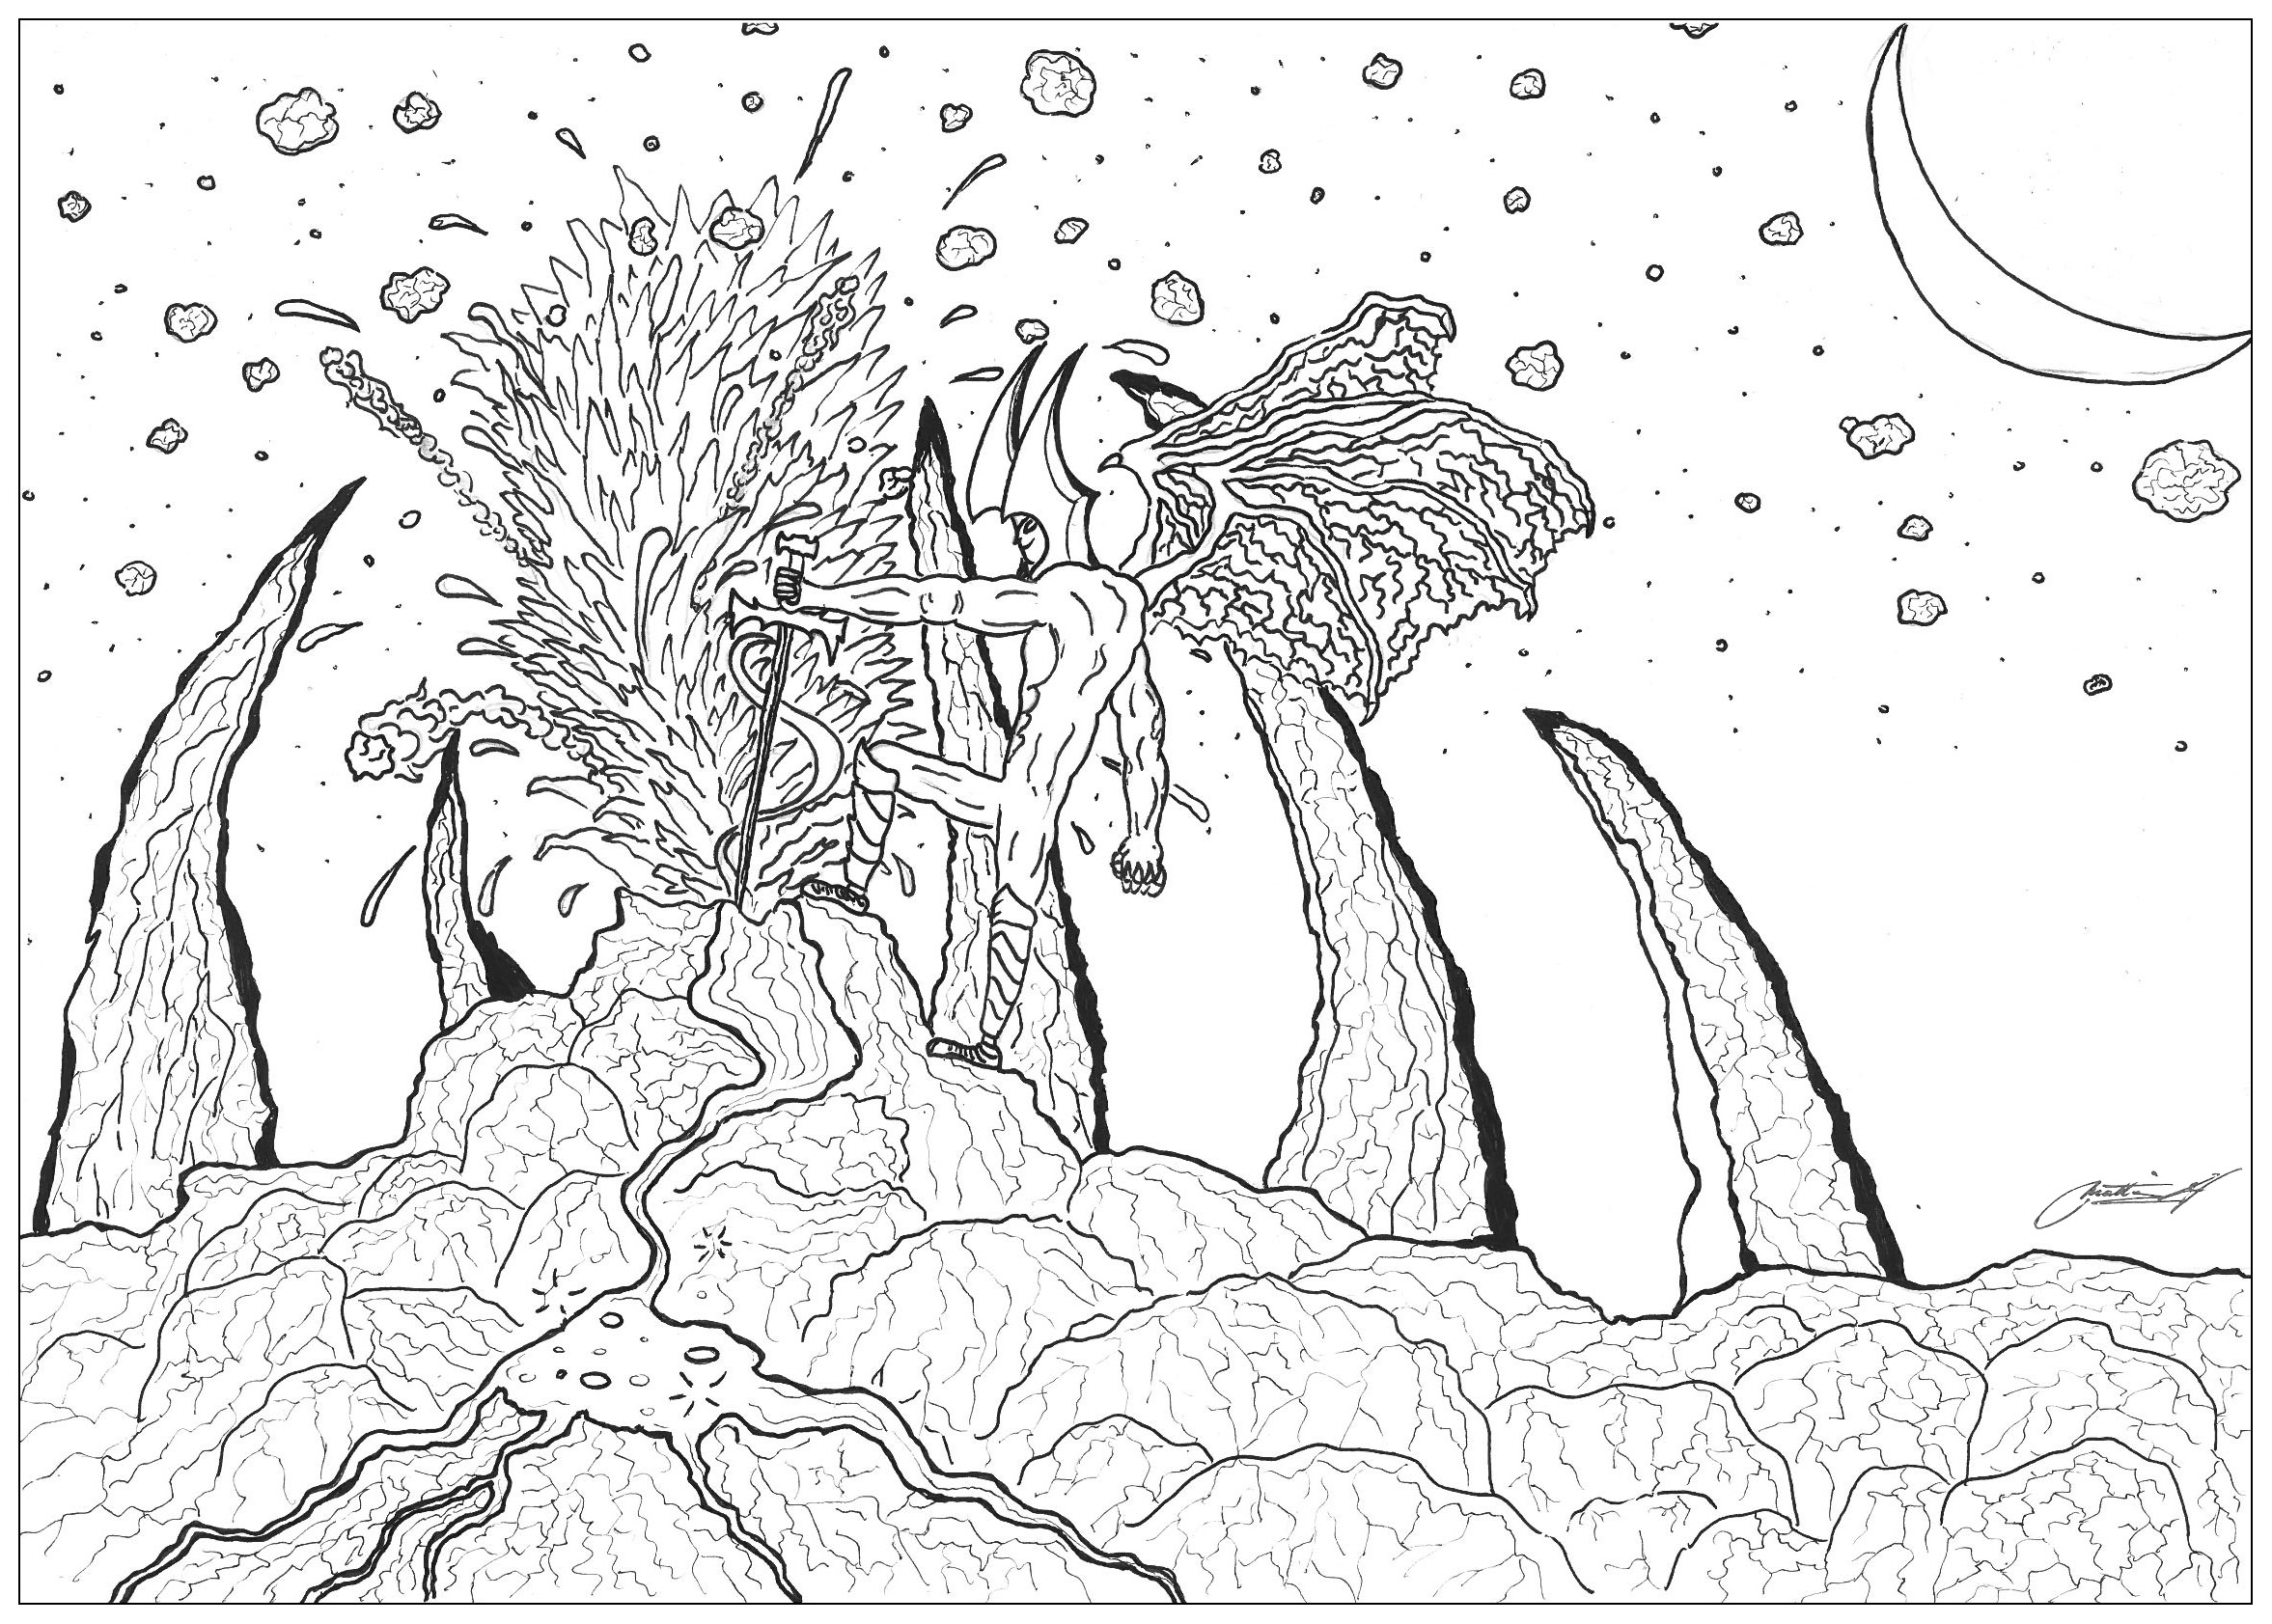 coloring with legend legend of zelda coloring pages at getcoloringscom free legend coloring with